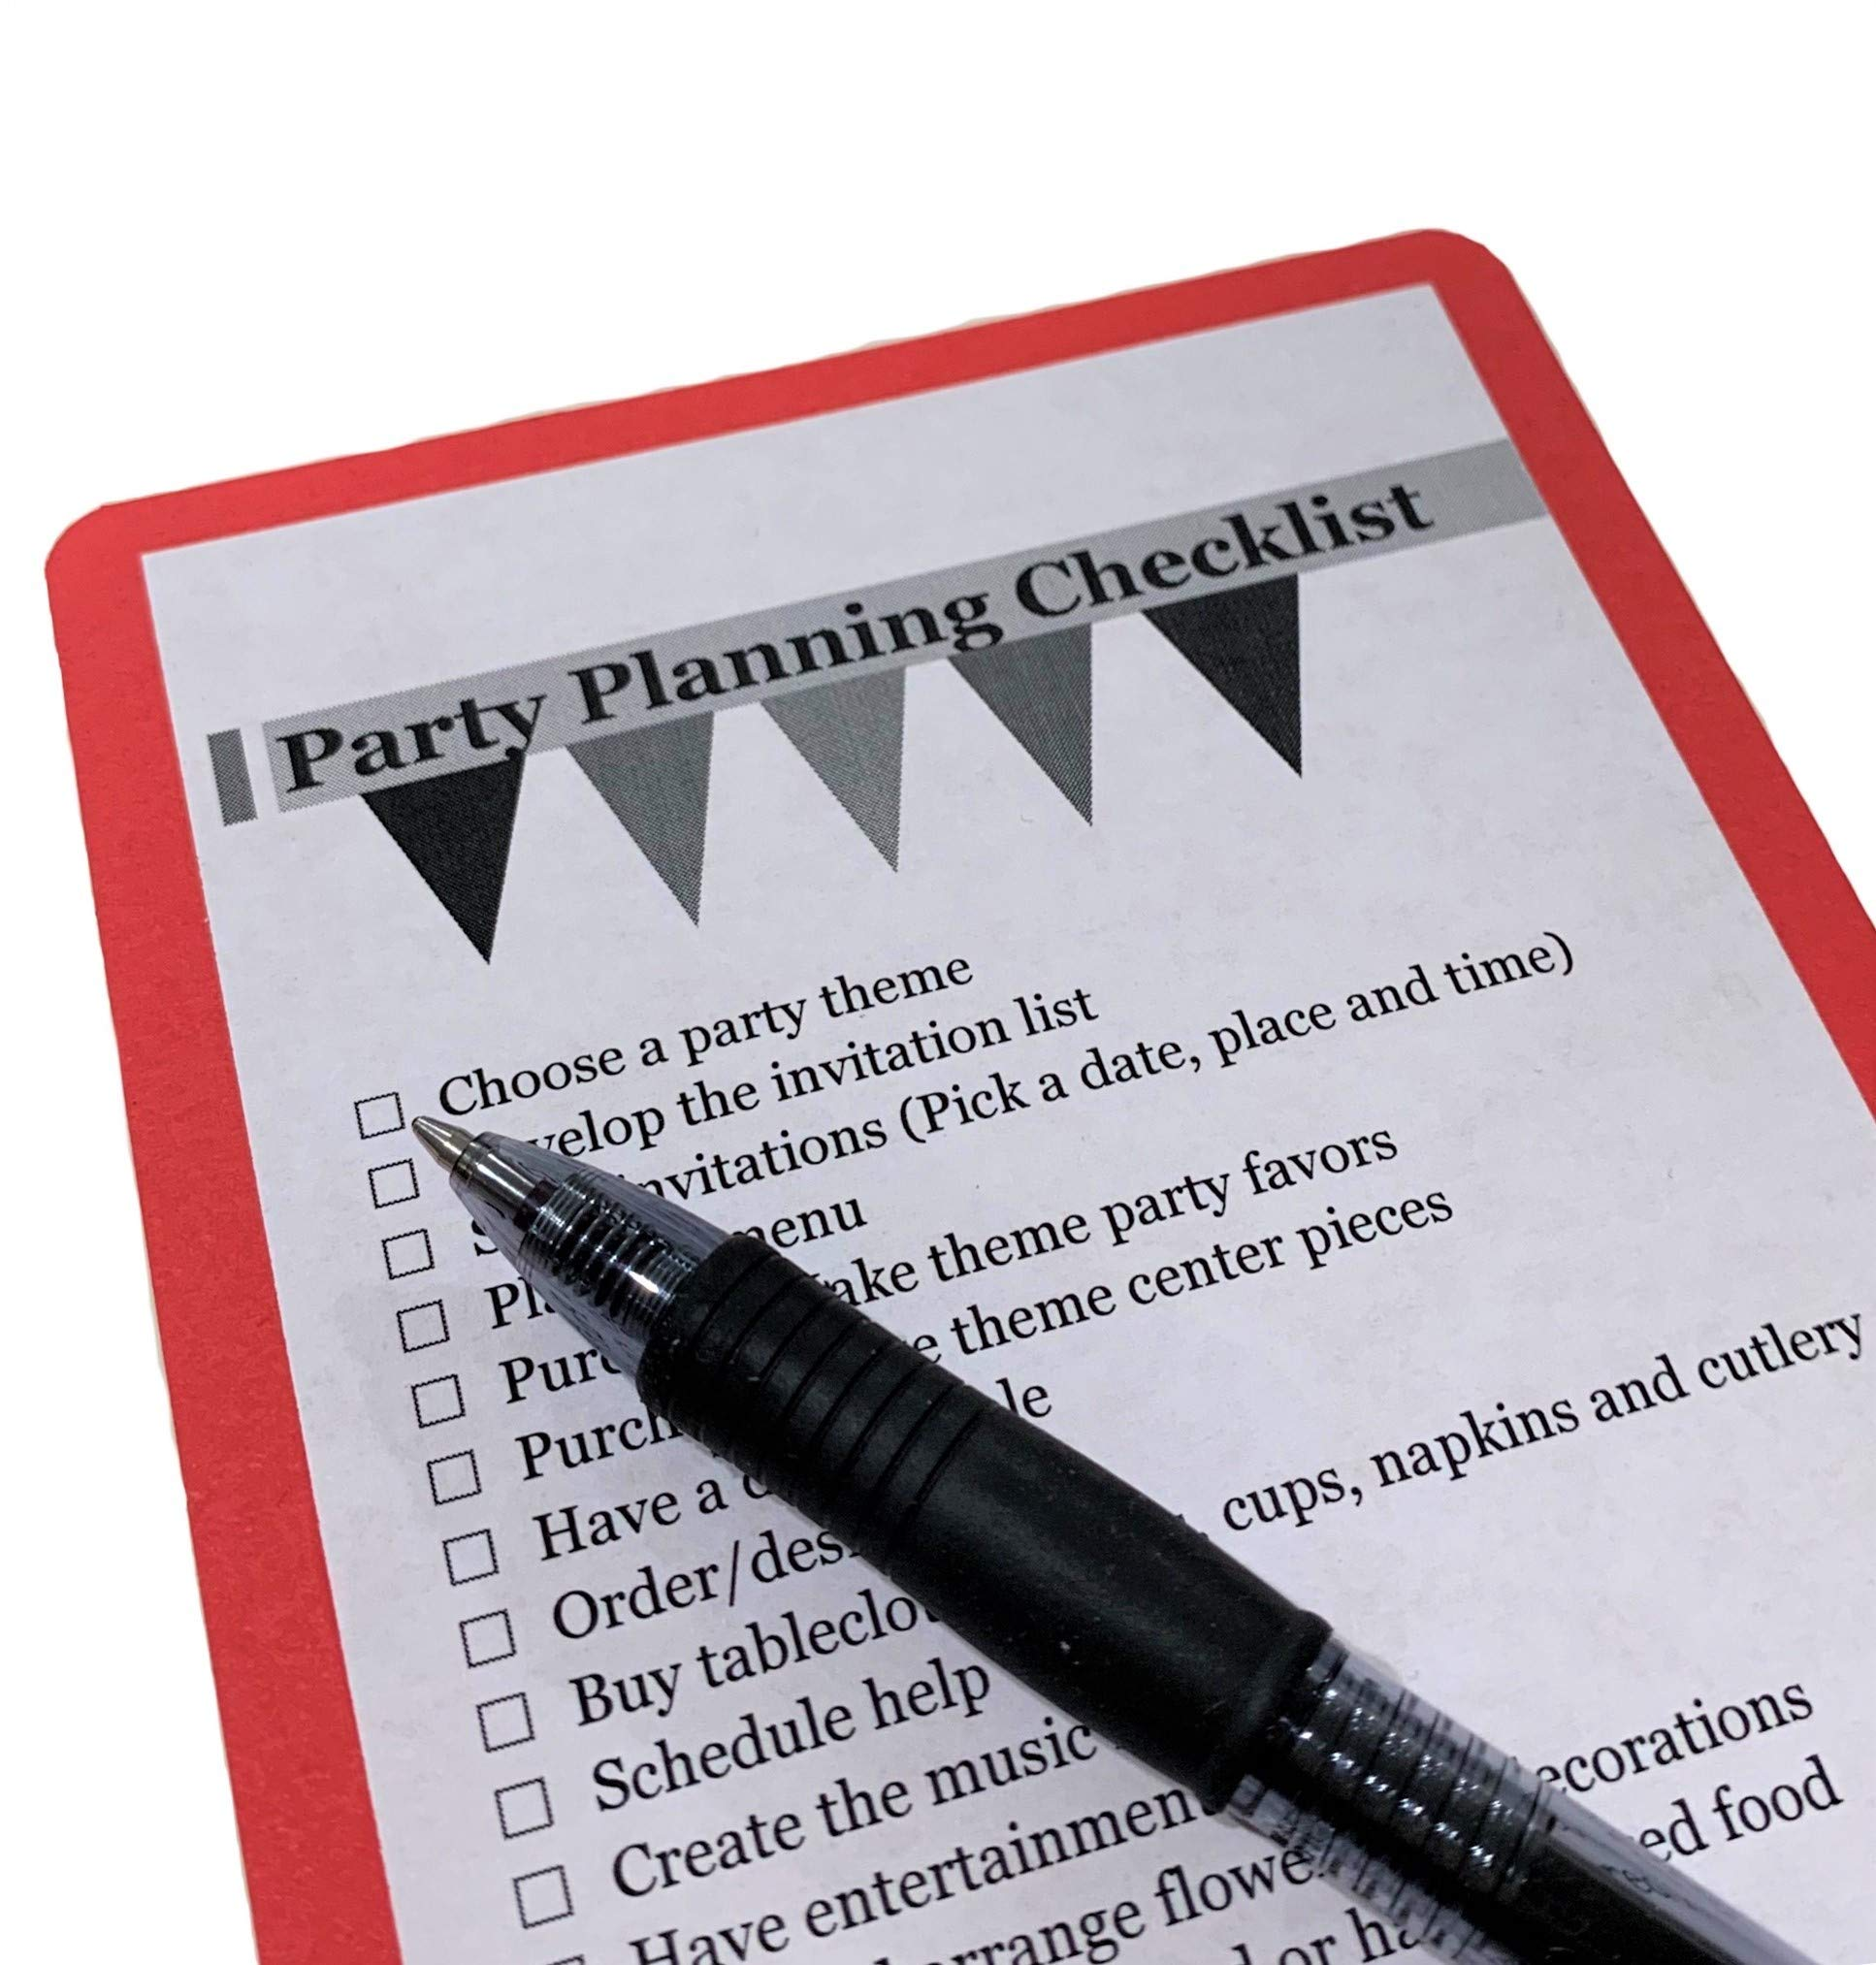 Classic RED Beverage Napkins (100-count) and Classic RED Dinner Napkins (100-count), and Comes with a Party Planning Checklist by Creative Converting Touch of Color